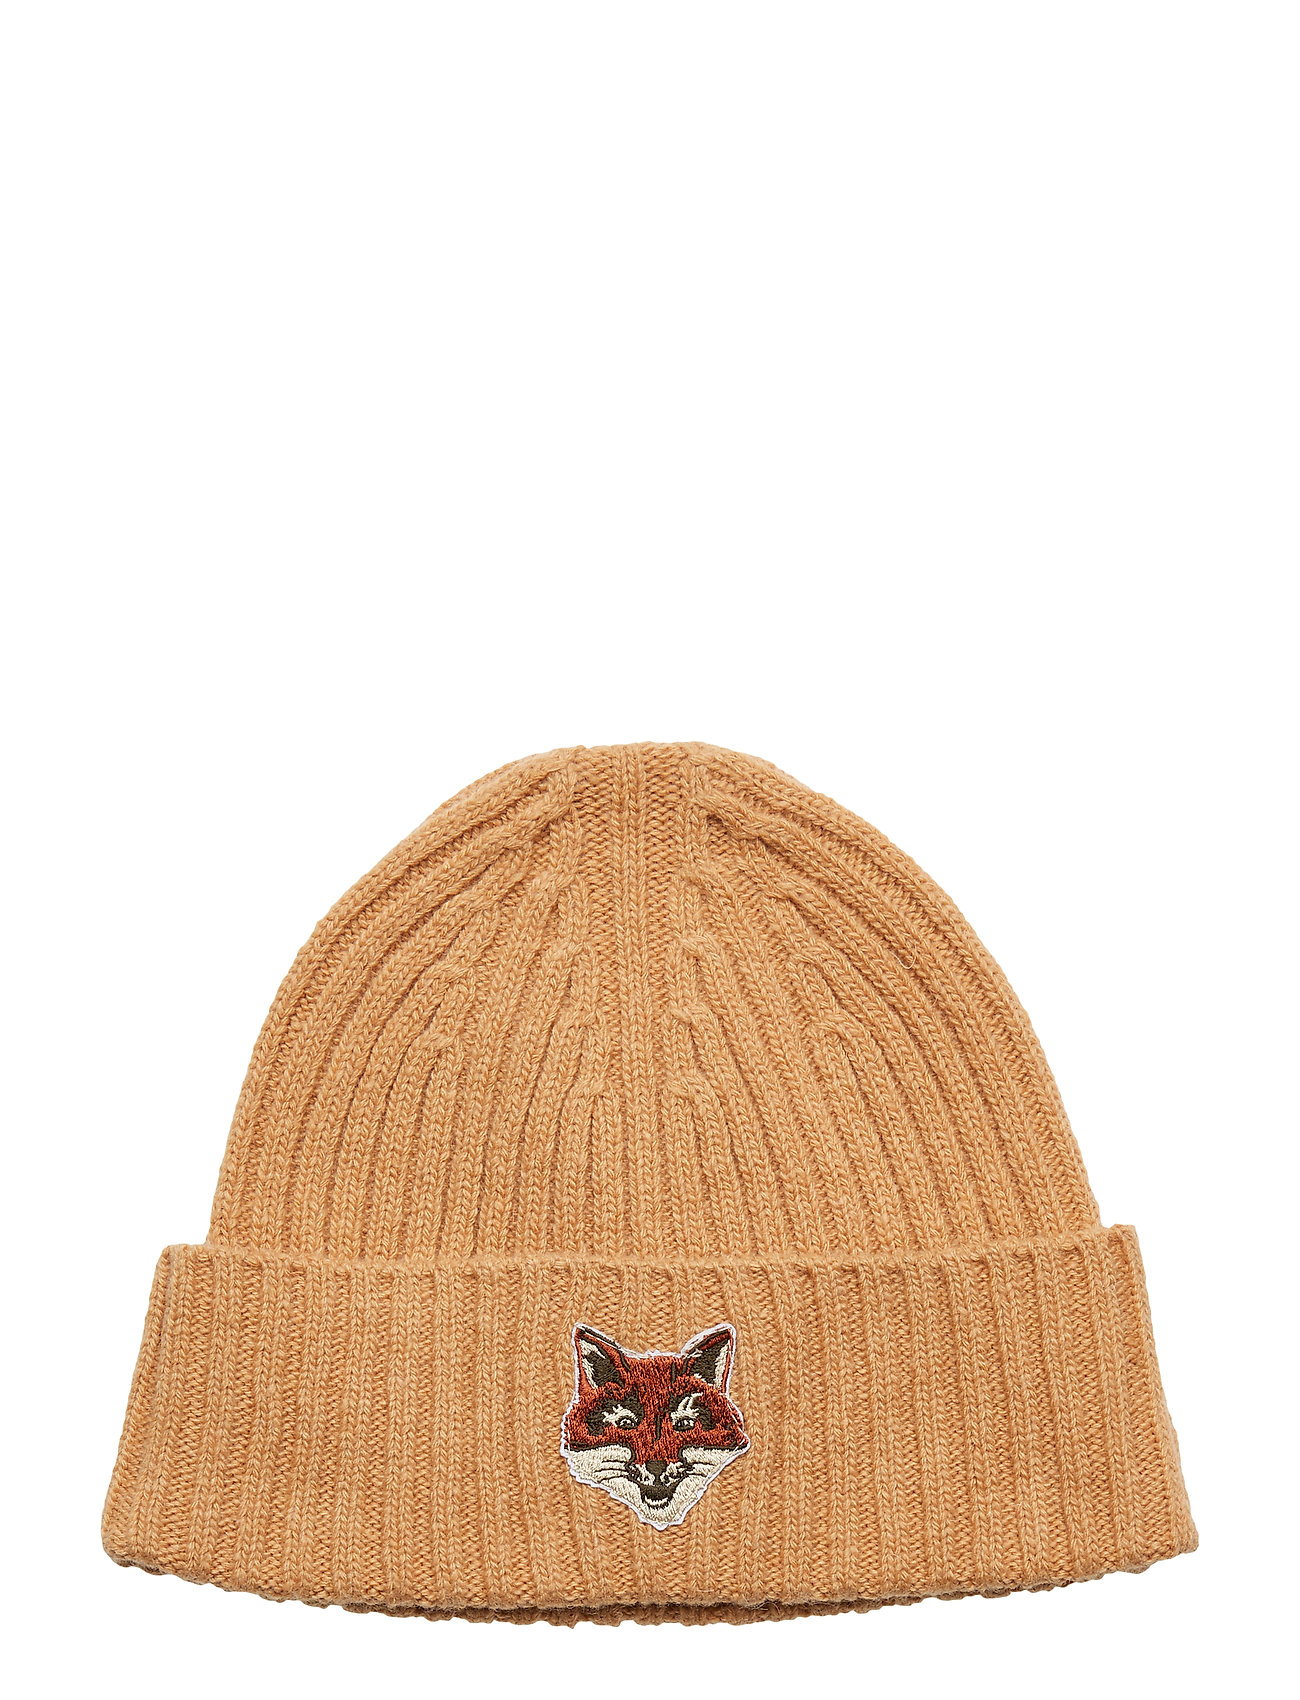 Soft Gallery Boo Hat - DOE, FURRYFOX PATCH